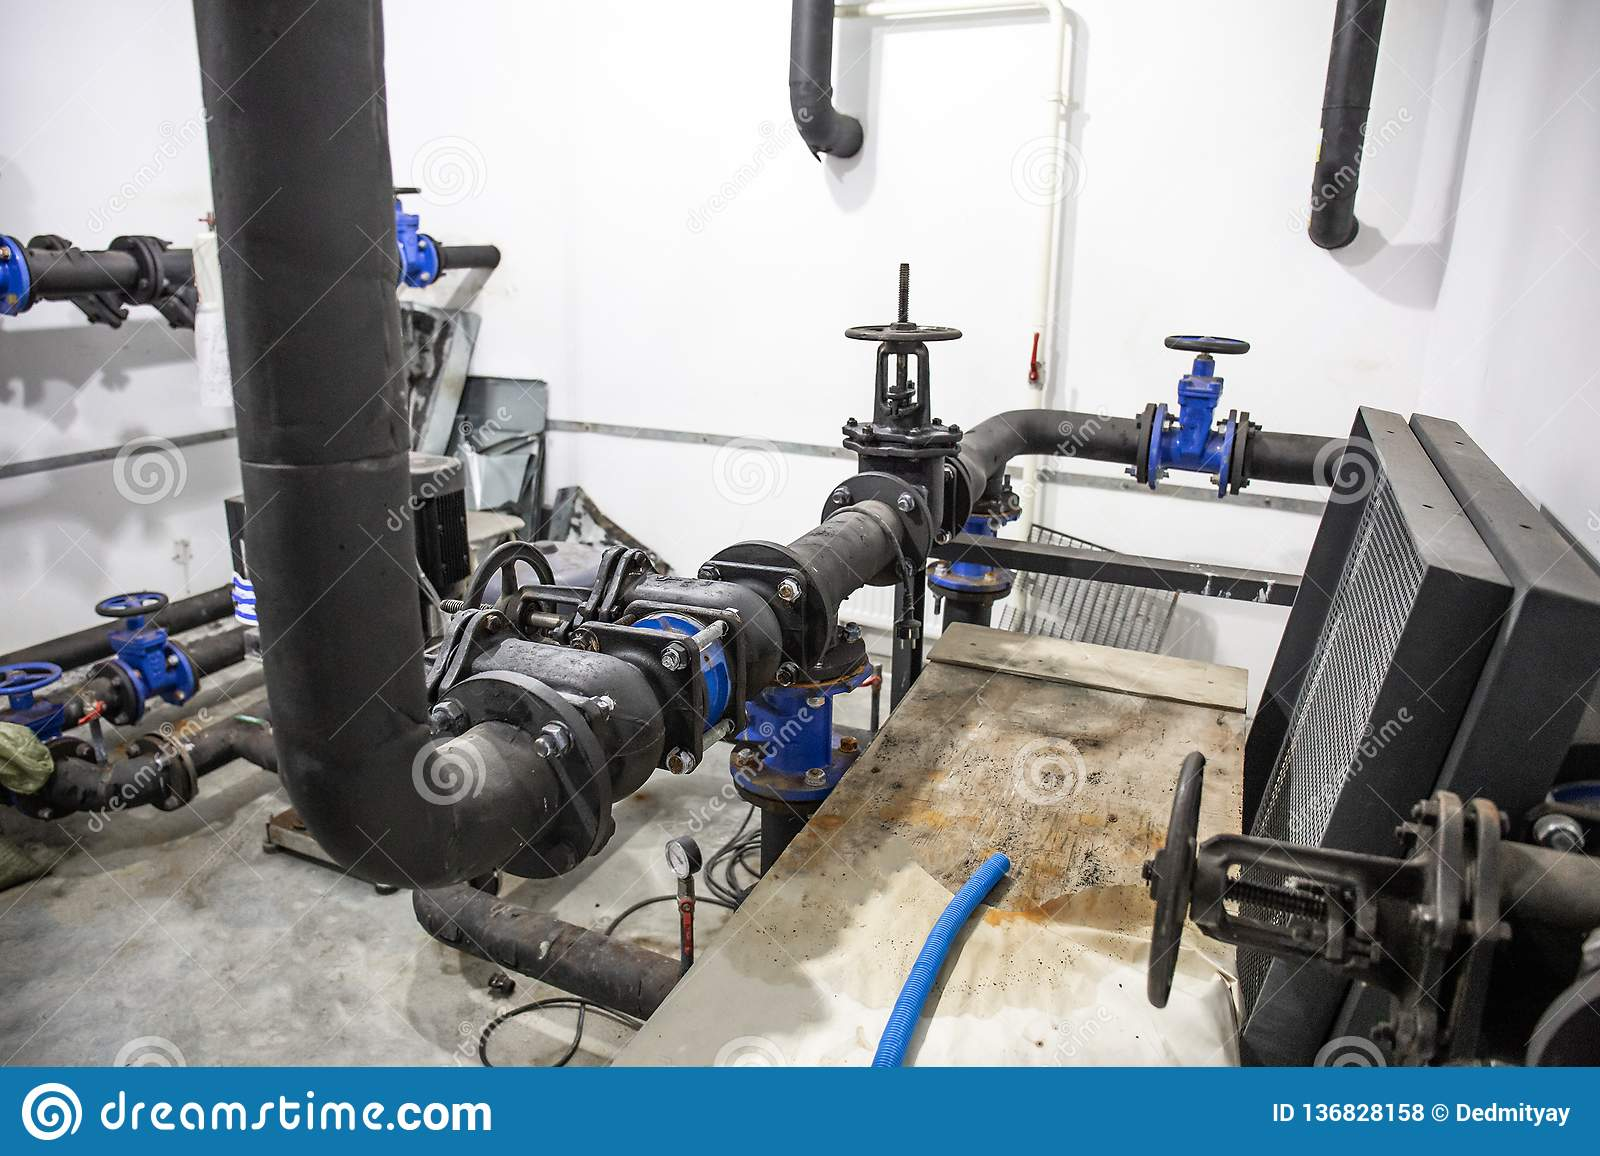 House heating system with many steel and plastic pipes, metal tubes and automated control equipment